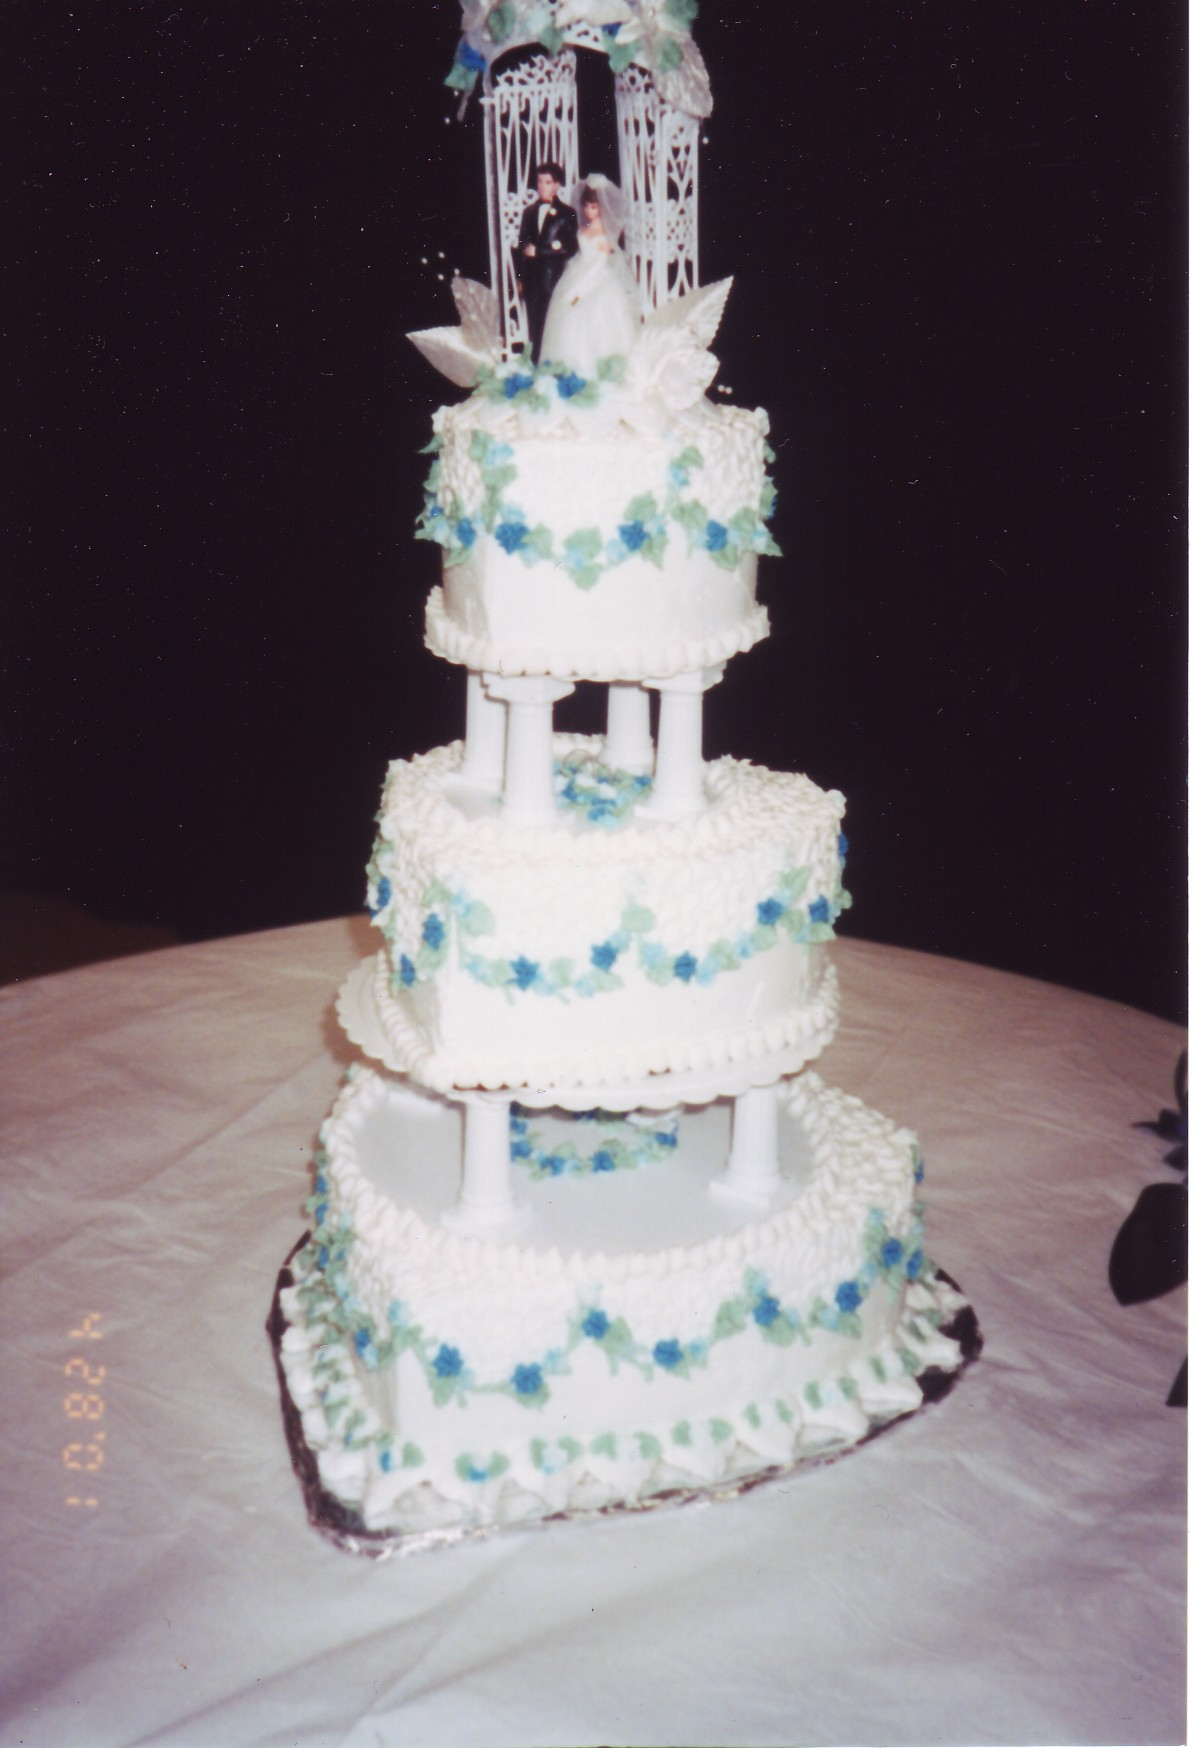 Cakes by Karen - Wedding CAKES